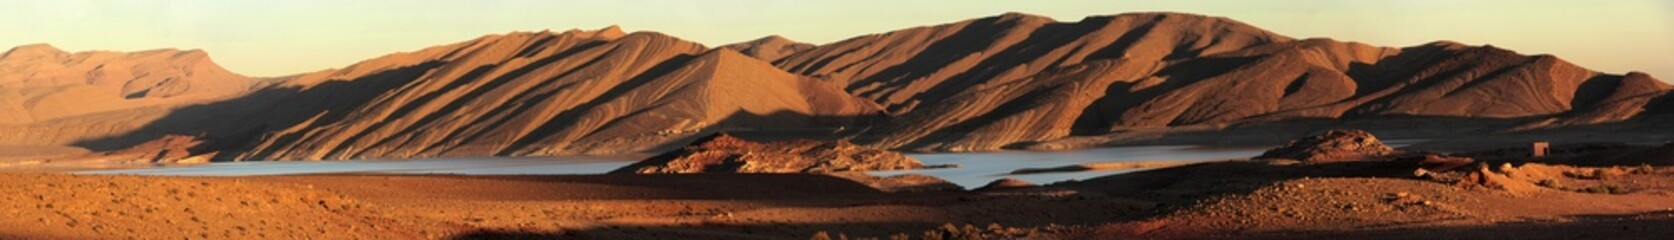 Panoramic of Sand dunes over an Oasis in Morocco